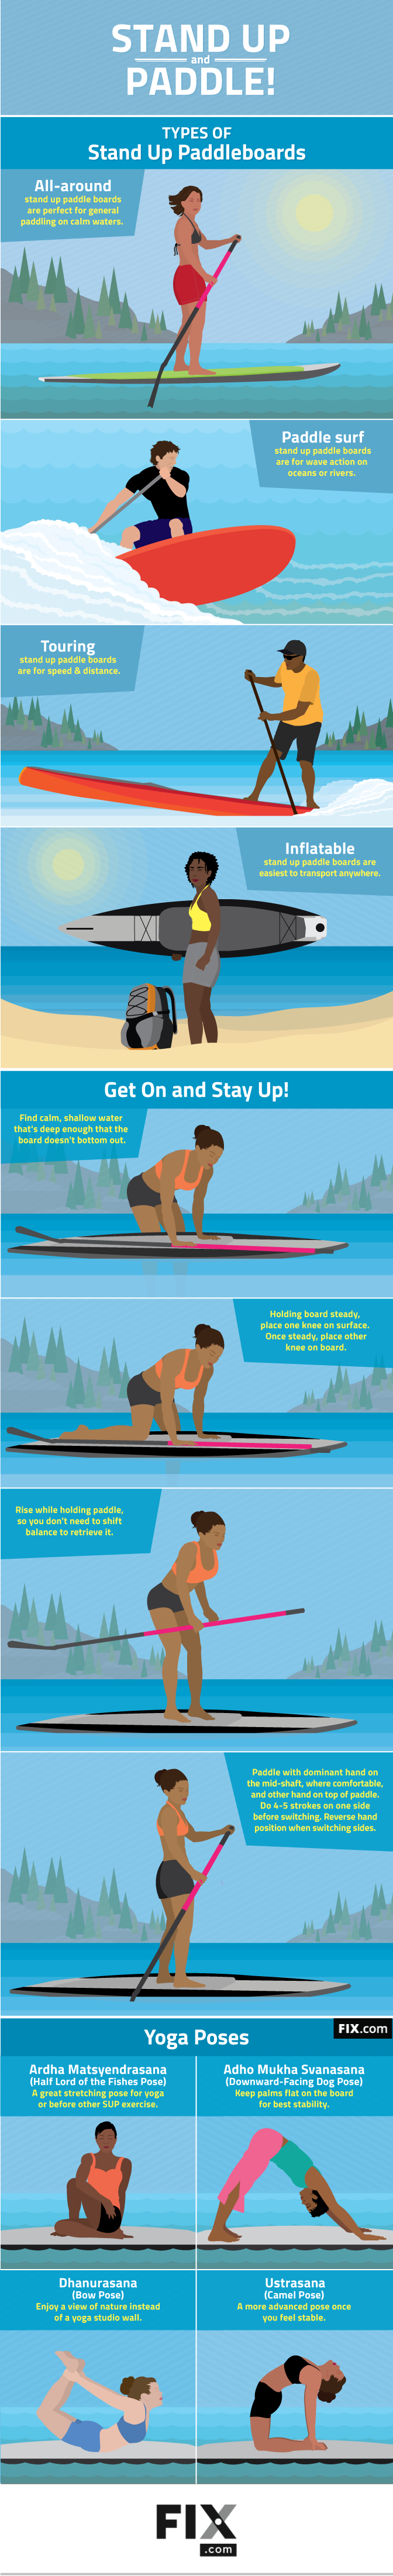 Stand Up Paddle Boarding More Than Just Standing and Paddling